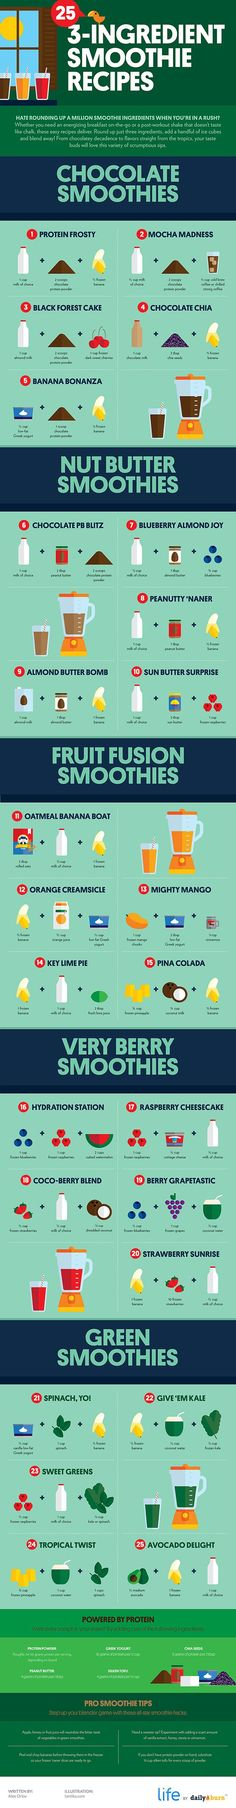 Make your a.m. routine a breeze with these healthy smoothie recipes that require just 3 ingredients each. Check out this infographic to find your favorites!